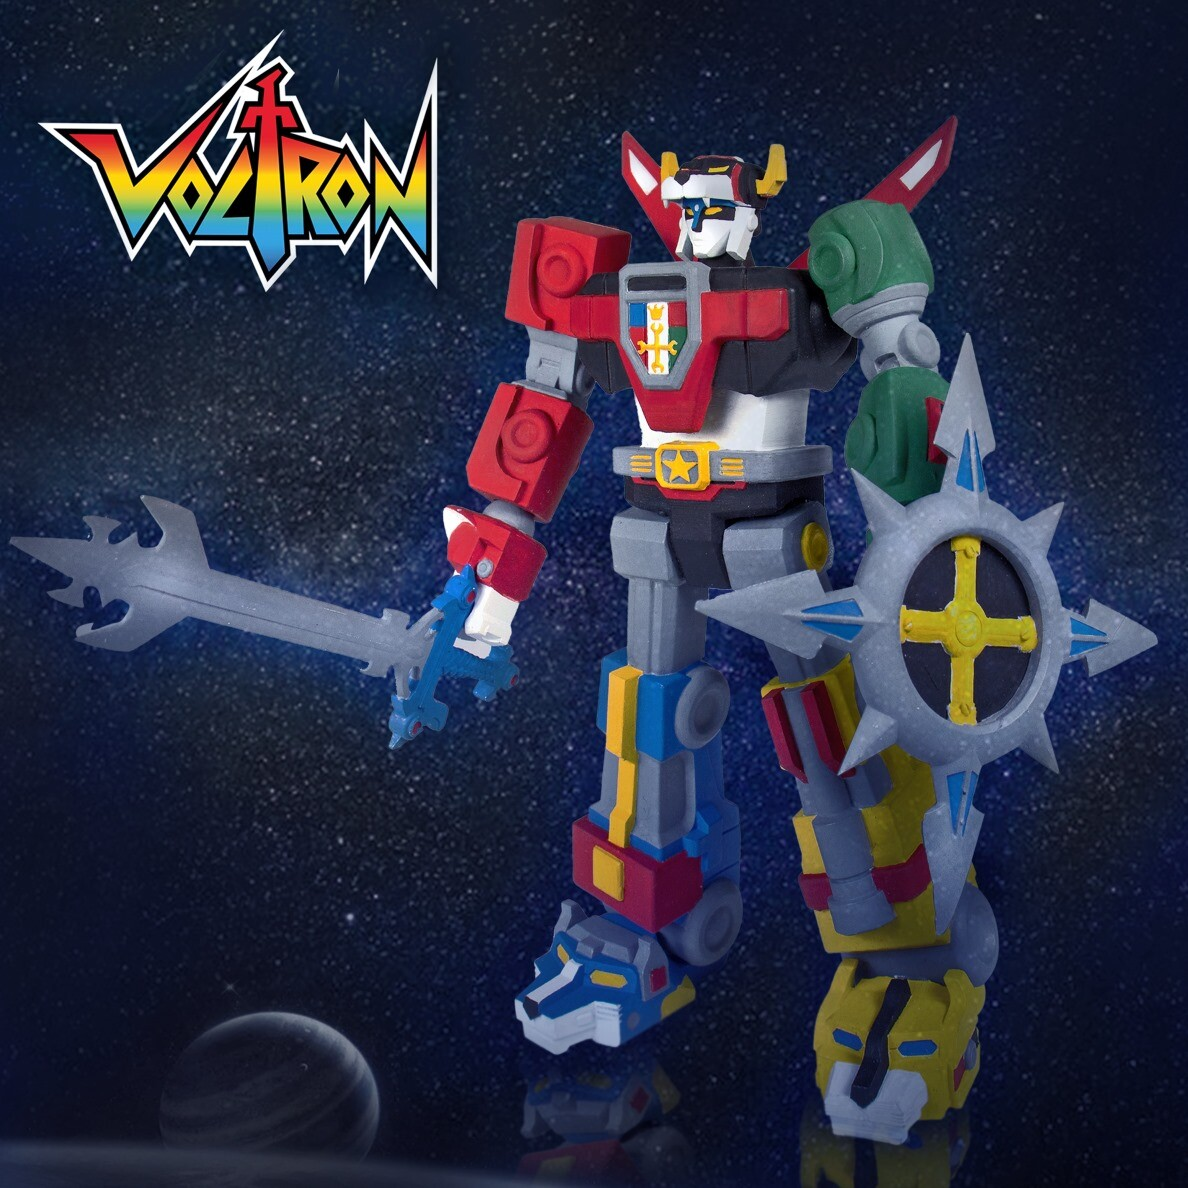 Ben misenar super 7 voltron